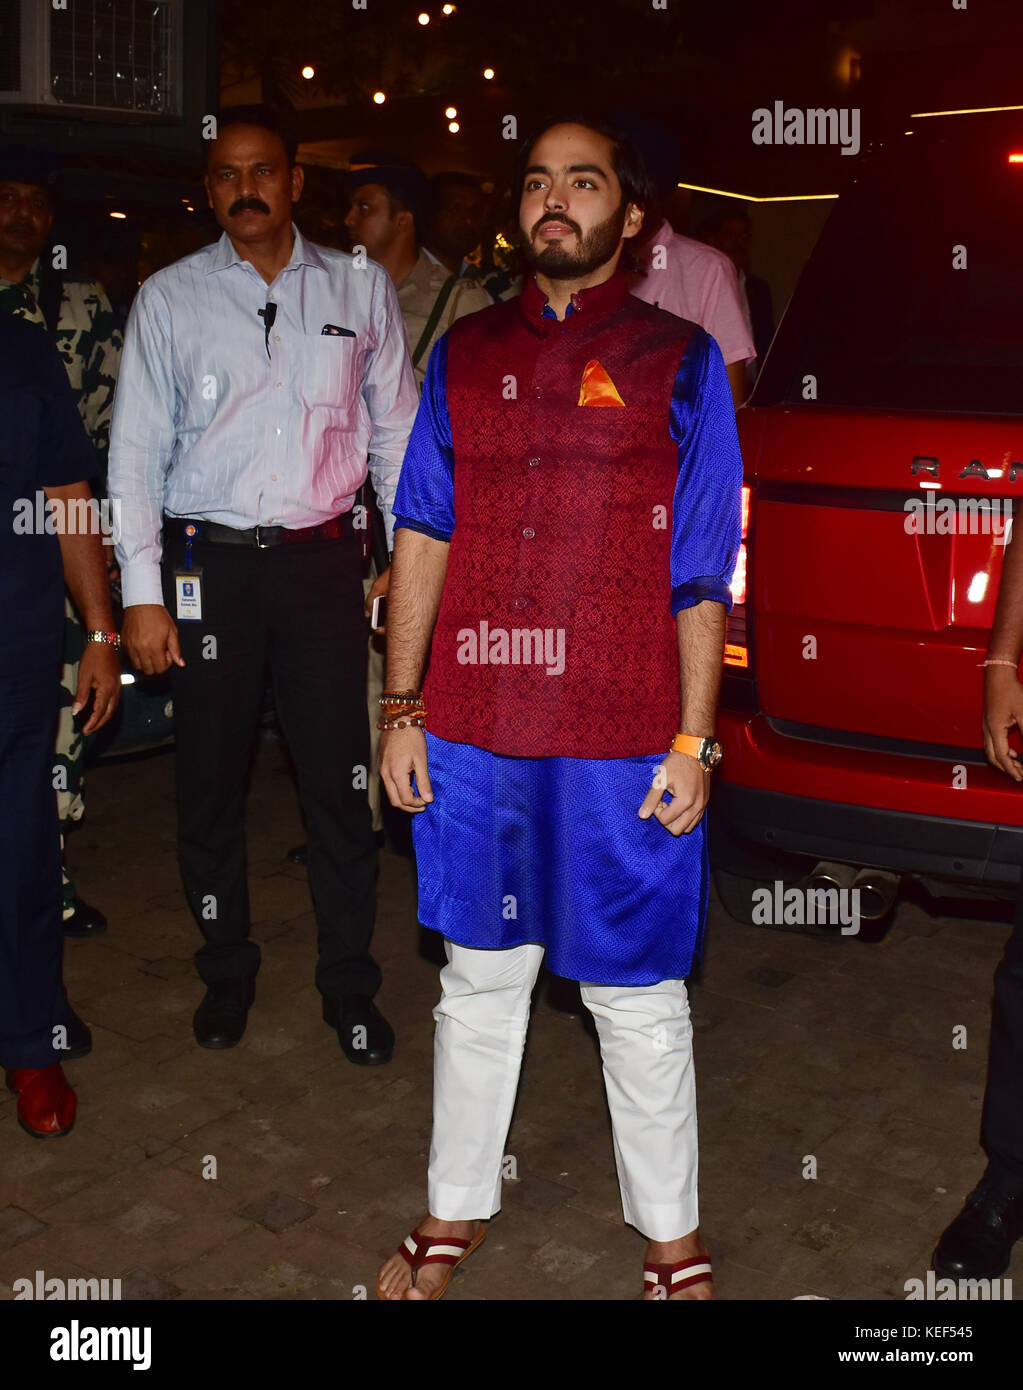 Mumbai, India. 19th Oct, 2017. Anant Ambani attend the Aamir Khan's Diwali party at his recidency in Bandra, - Stock Image